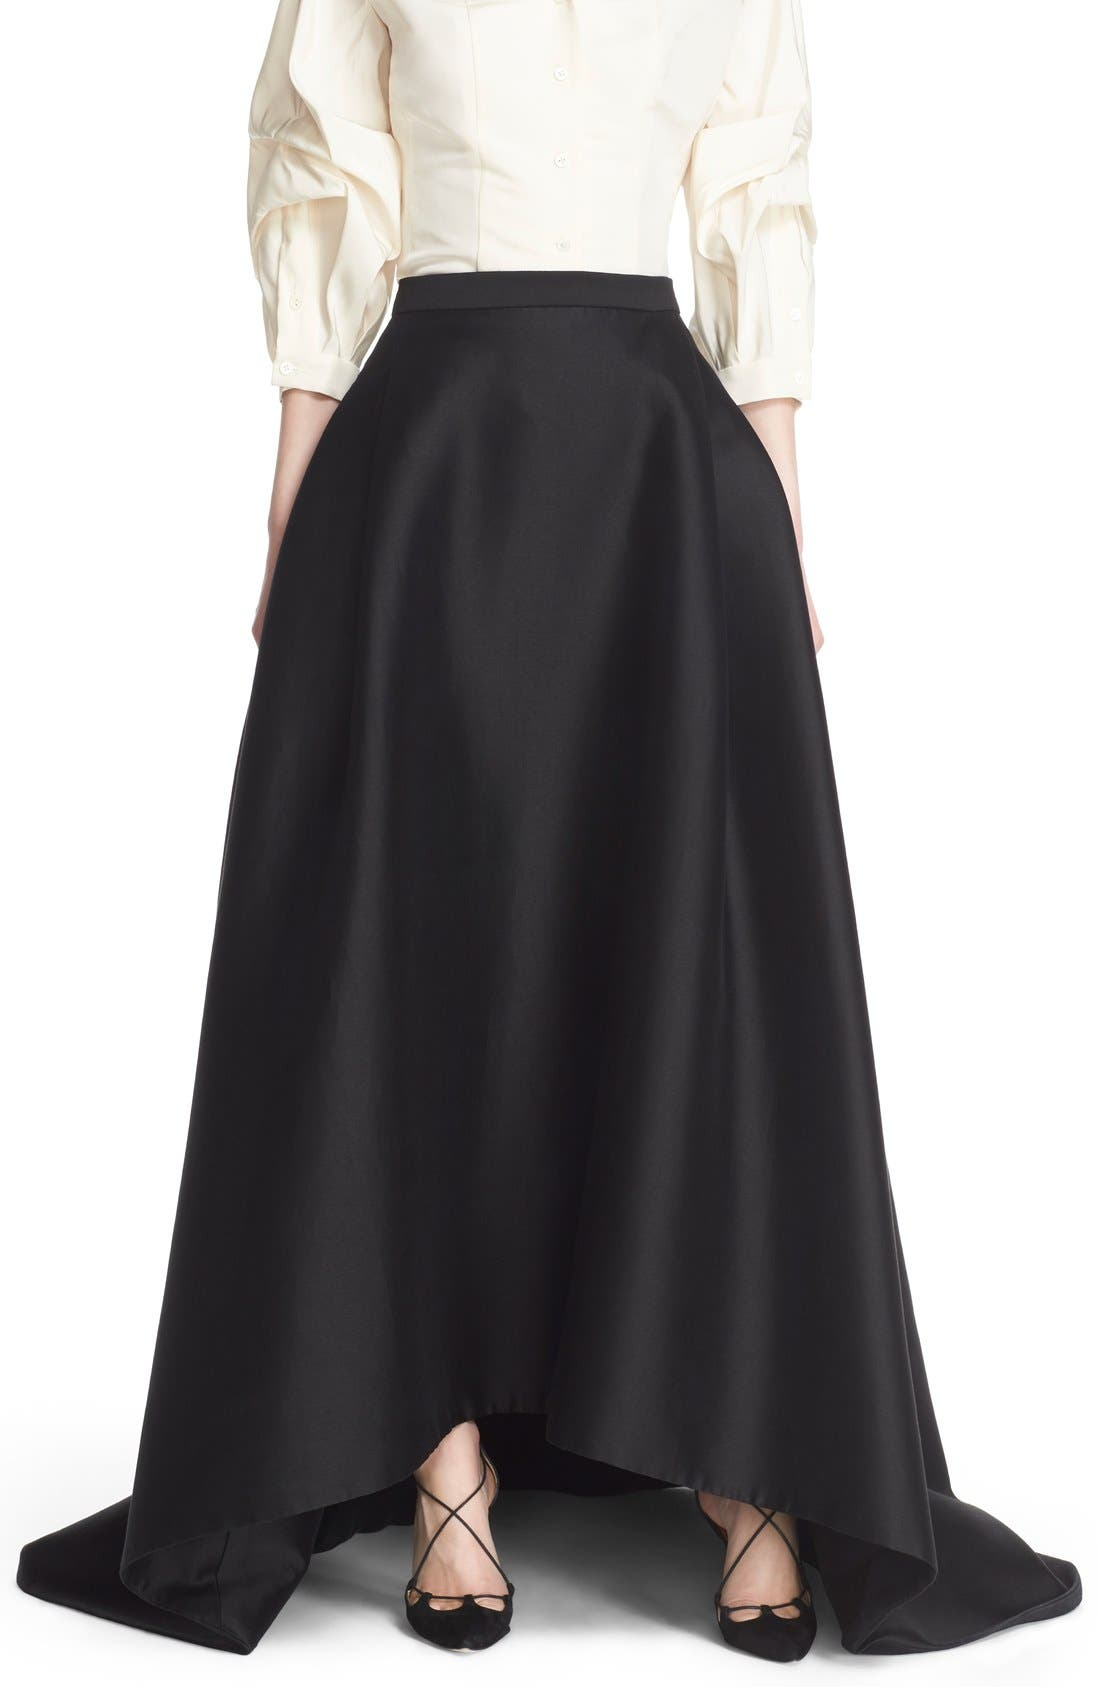 Alternate Image 1 Selected - Carolina Herrera Full Length Evening Skirt